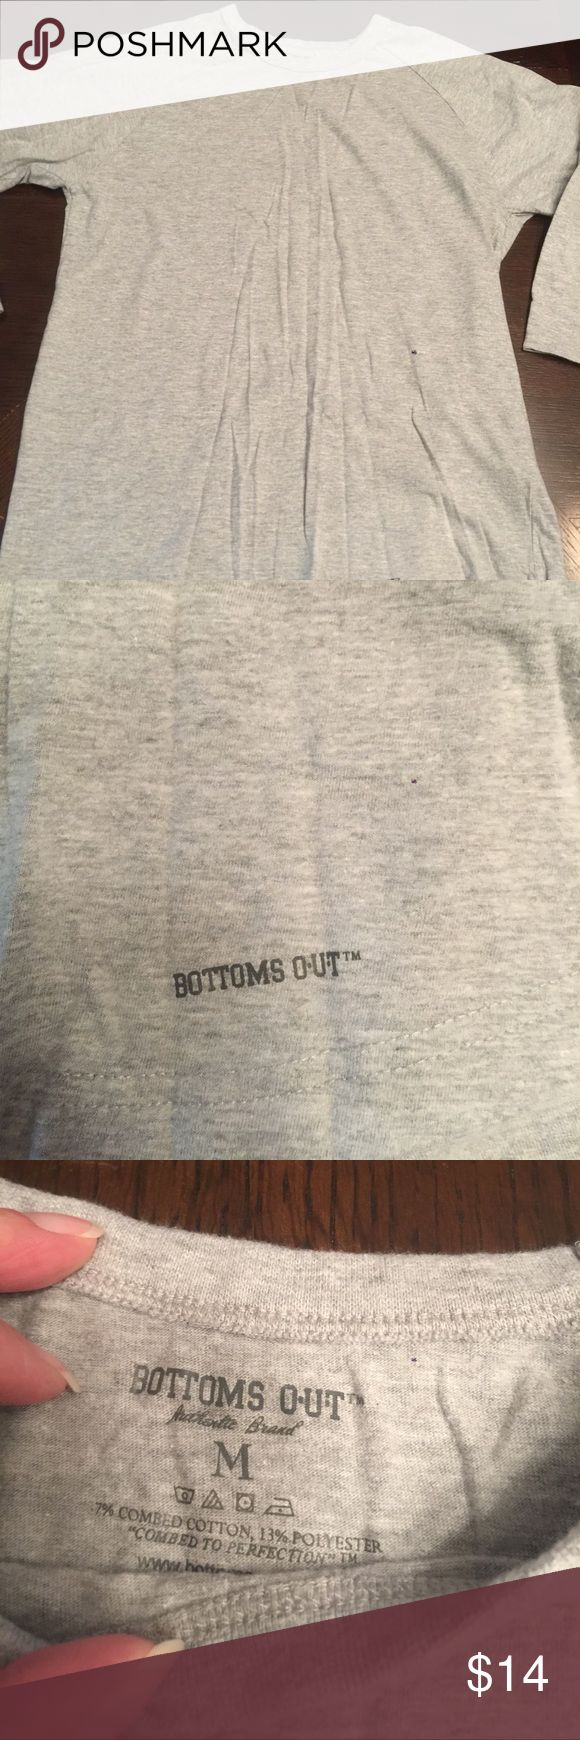 NWOT Men's Bottom's Out t-shirt NWOT Men's gray, 3/4 length sleeve Bottom's Out t-shirt. Great layering piece for Fall and Winter!! Bottom's Out Shirts Tees - Long Sleeve